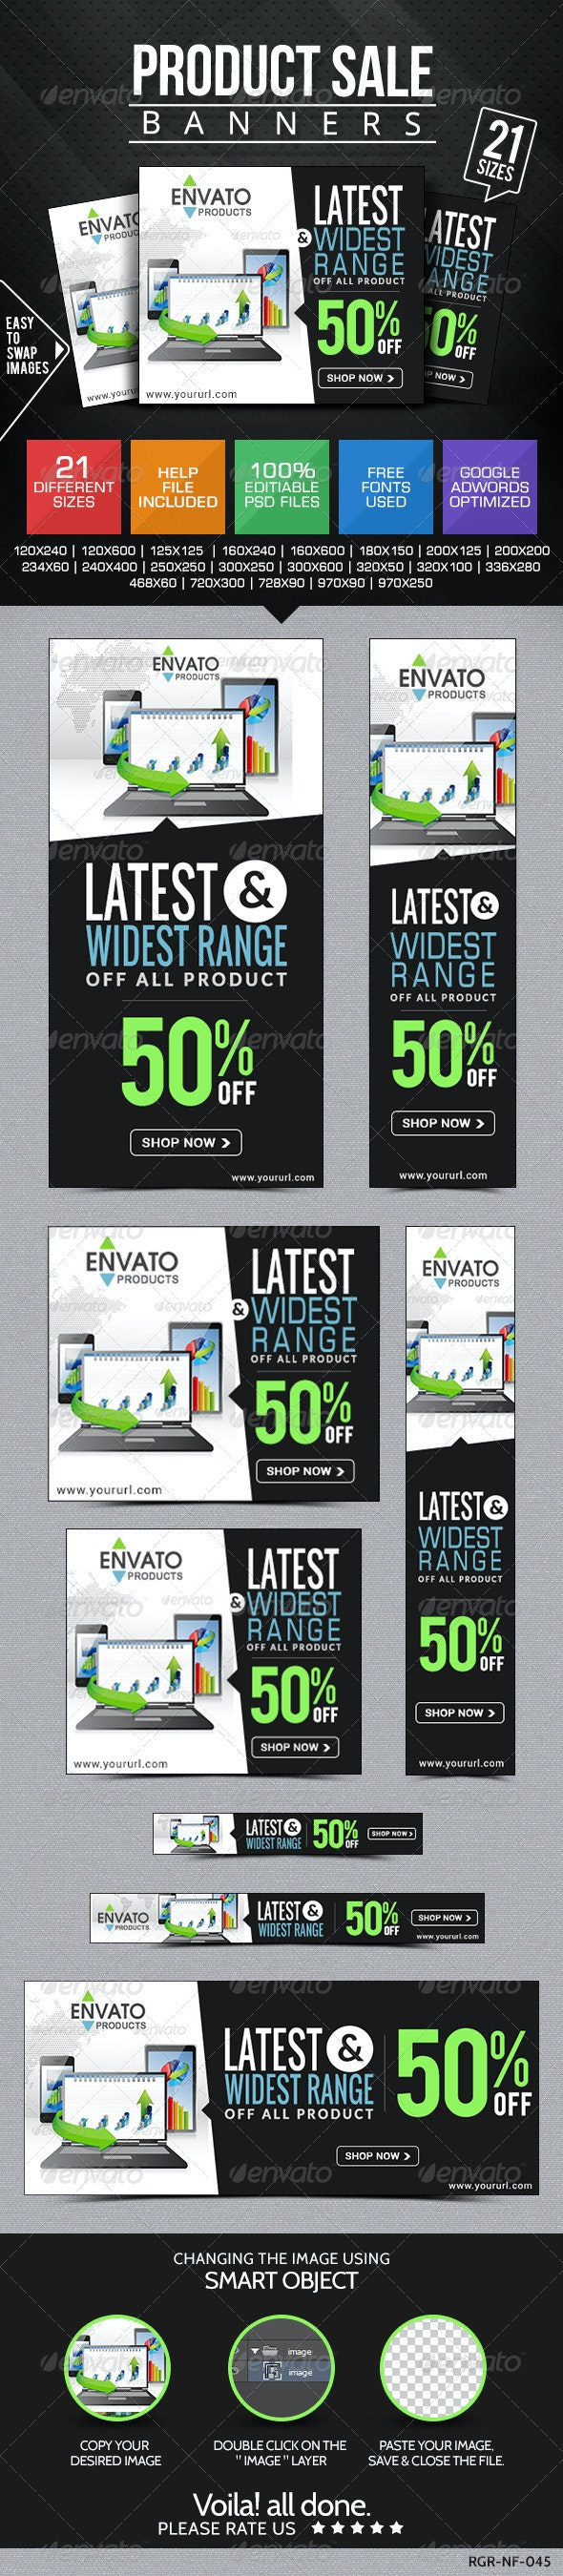 Product Sale Banners - Banners & Ads Web Elements